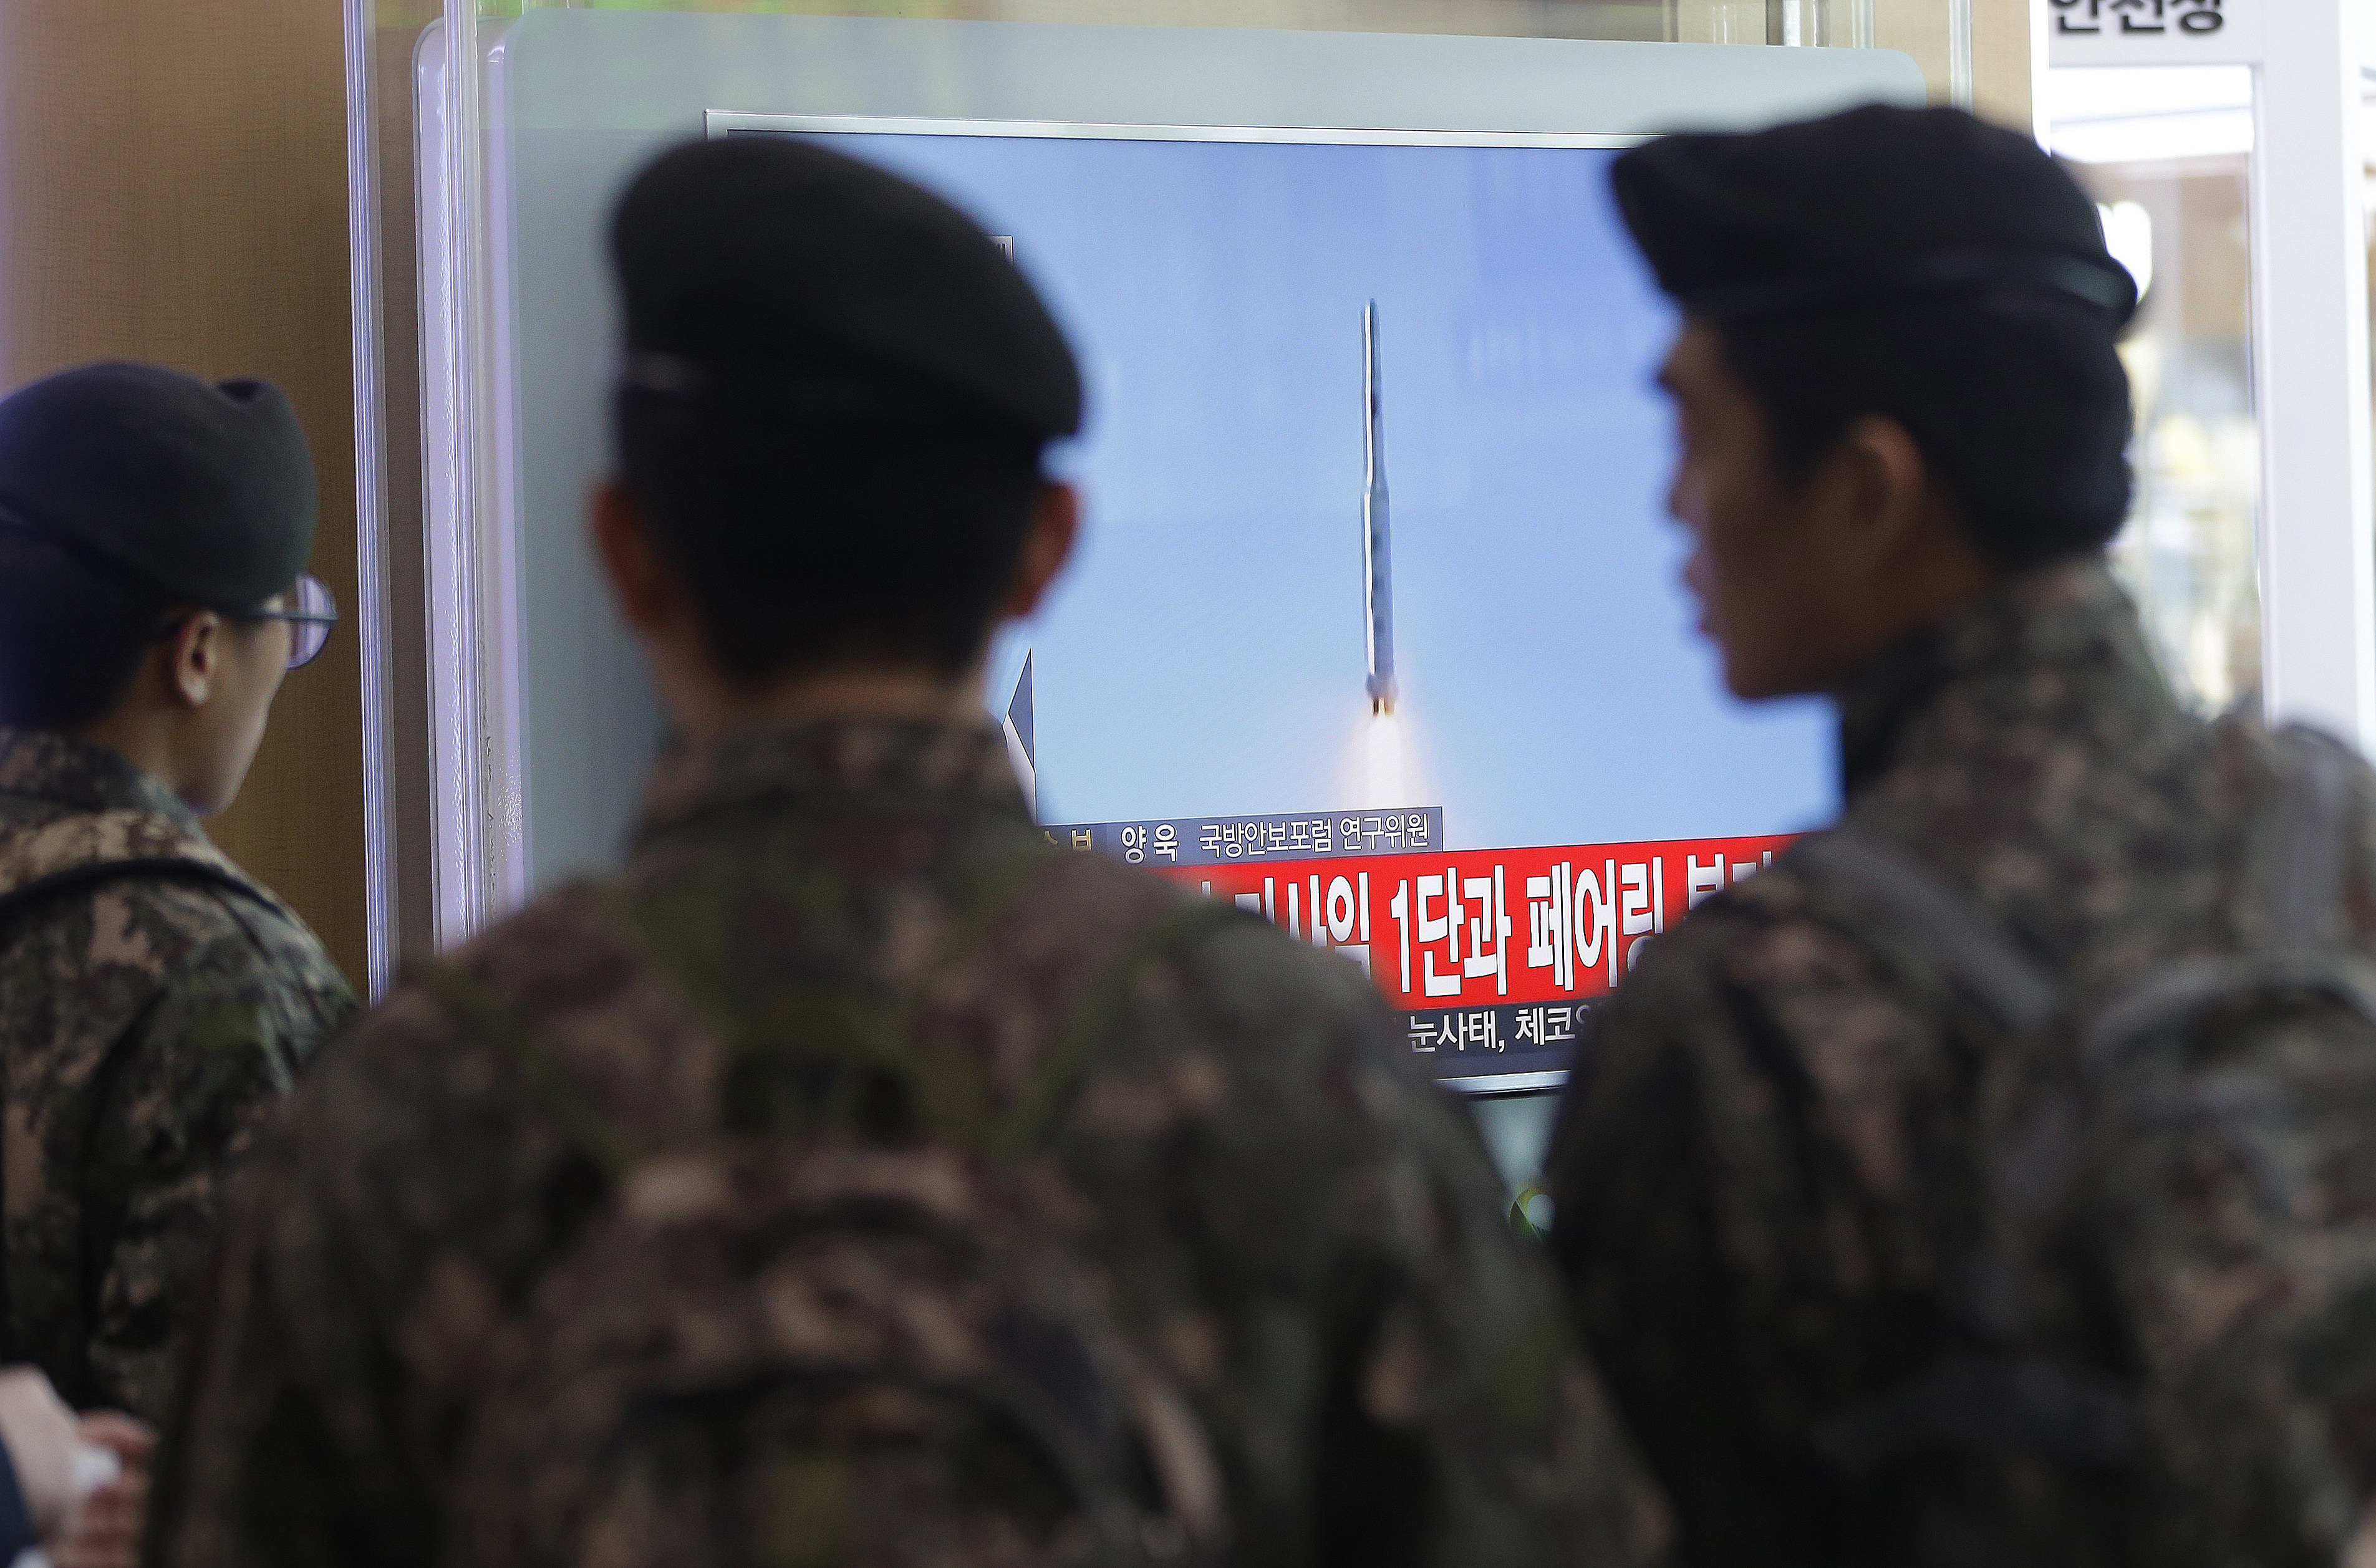 South Korean army soldiers watch a TV news program with a file footage about North Korea's rocket launch at Seoul Railway Station in Seoul, South Korea on Feb. 7, 2016.